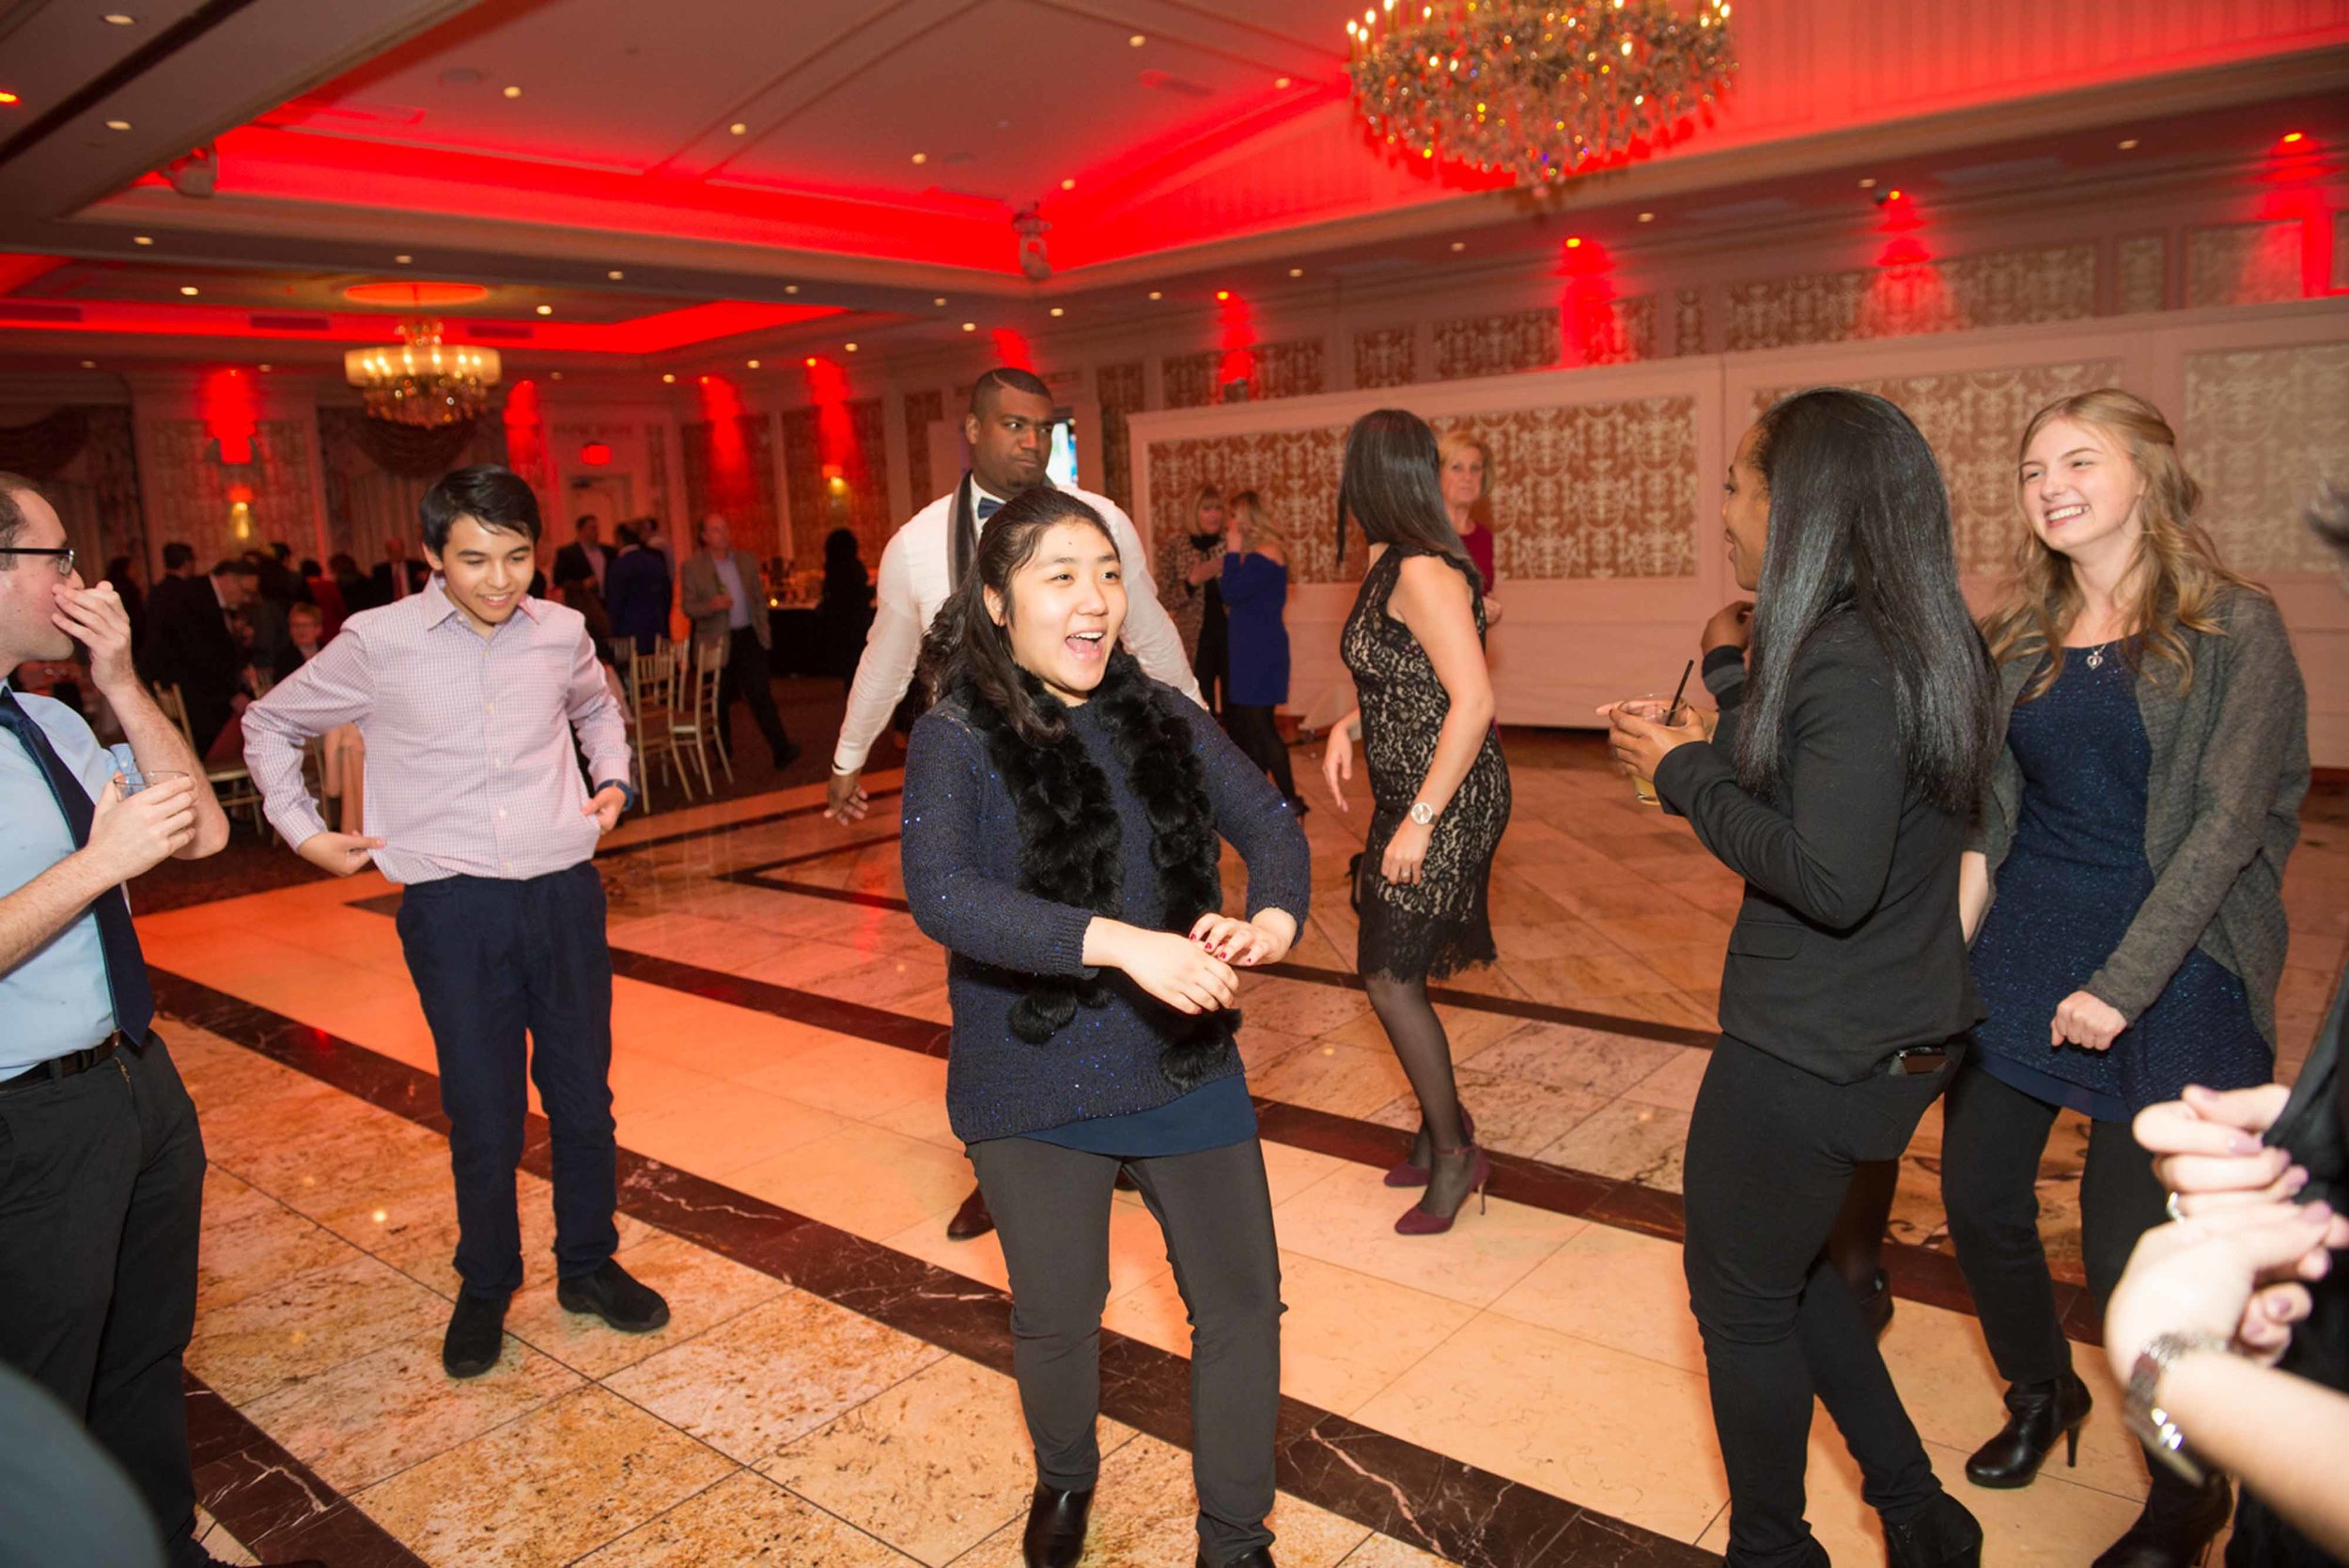 2017-11-10 The EPIC School - Party with a Purpose - Biagios on the Terrace - Paramus NJ-113.jpg